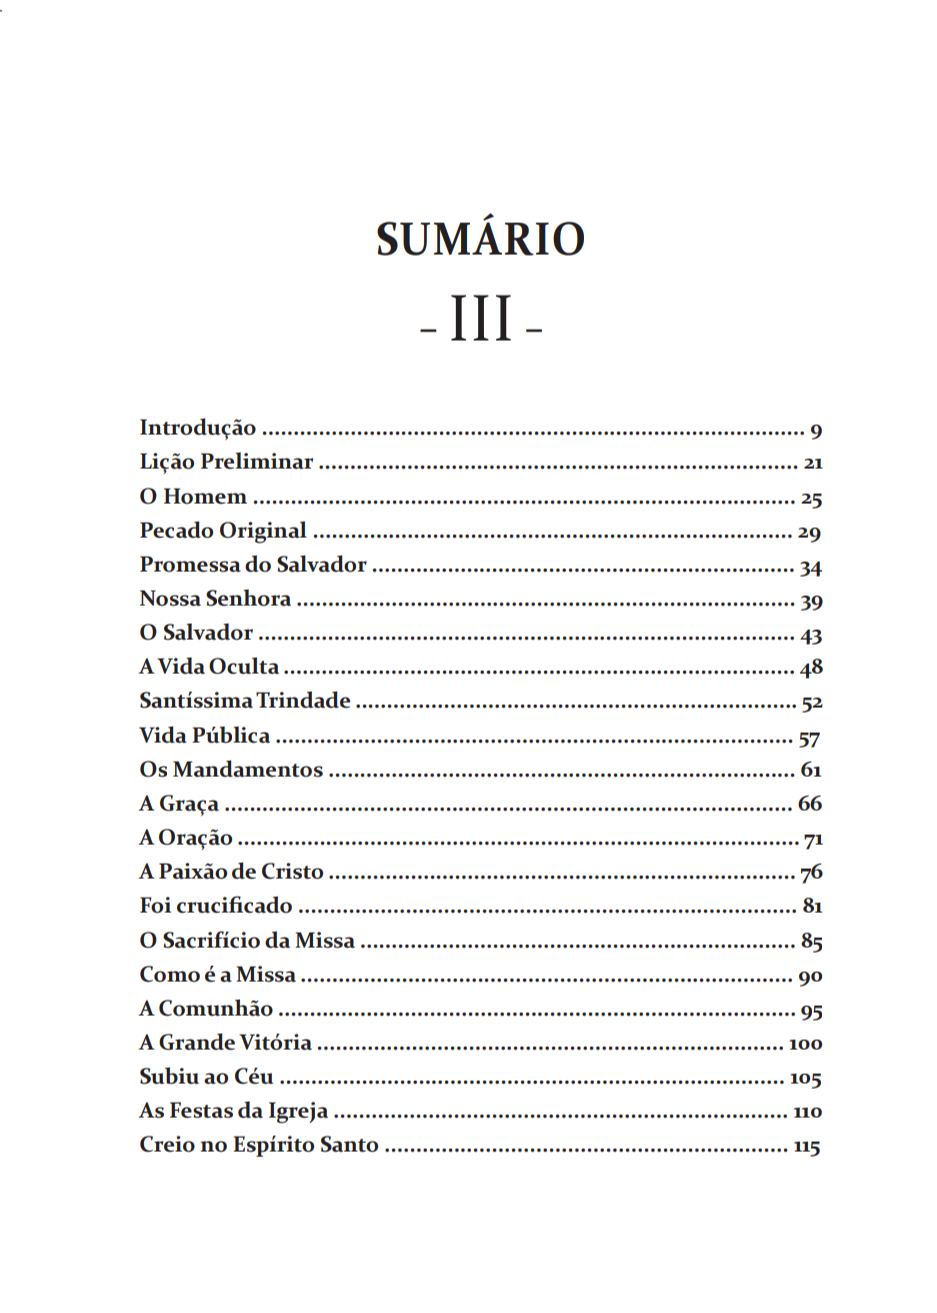 Guia do Catequista volume 03